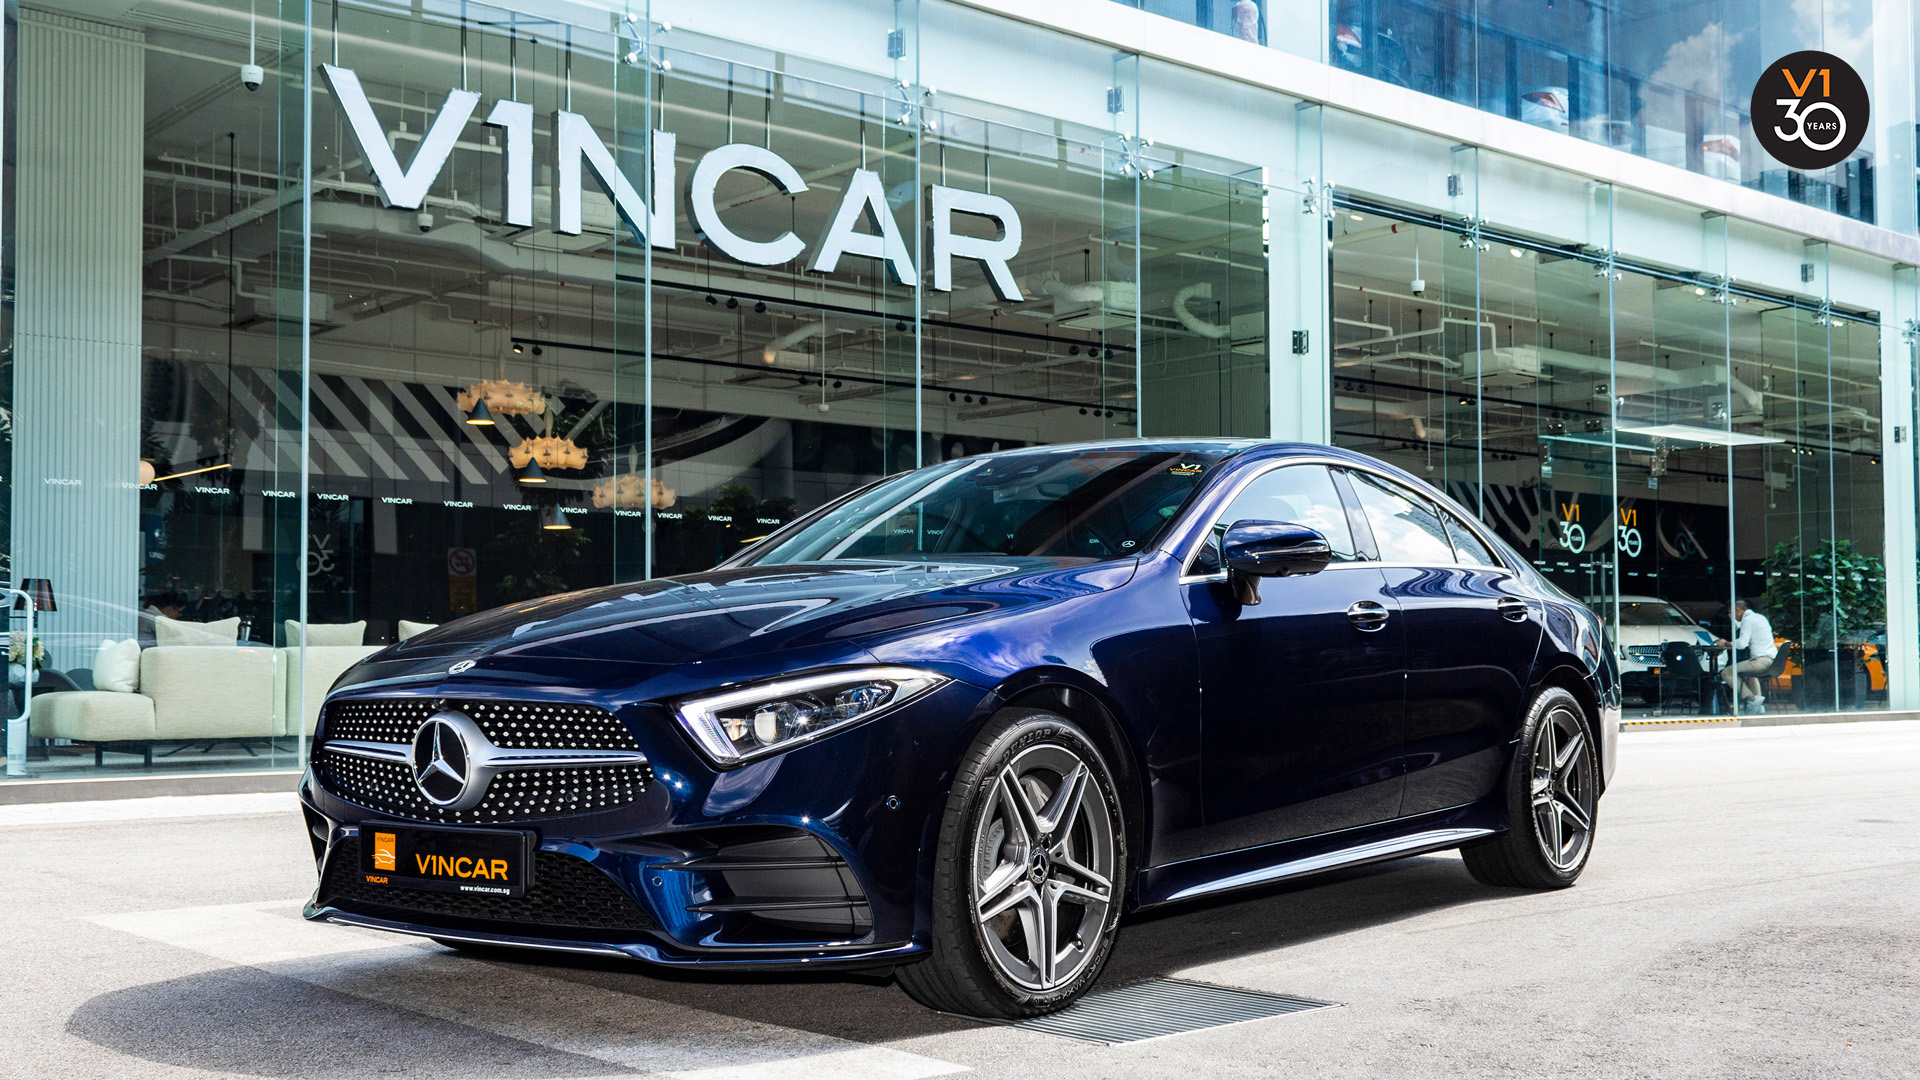 Mercedes-Benz CLS450 AMG Coupe 4MATIC Premium Plus - Front Angle